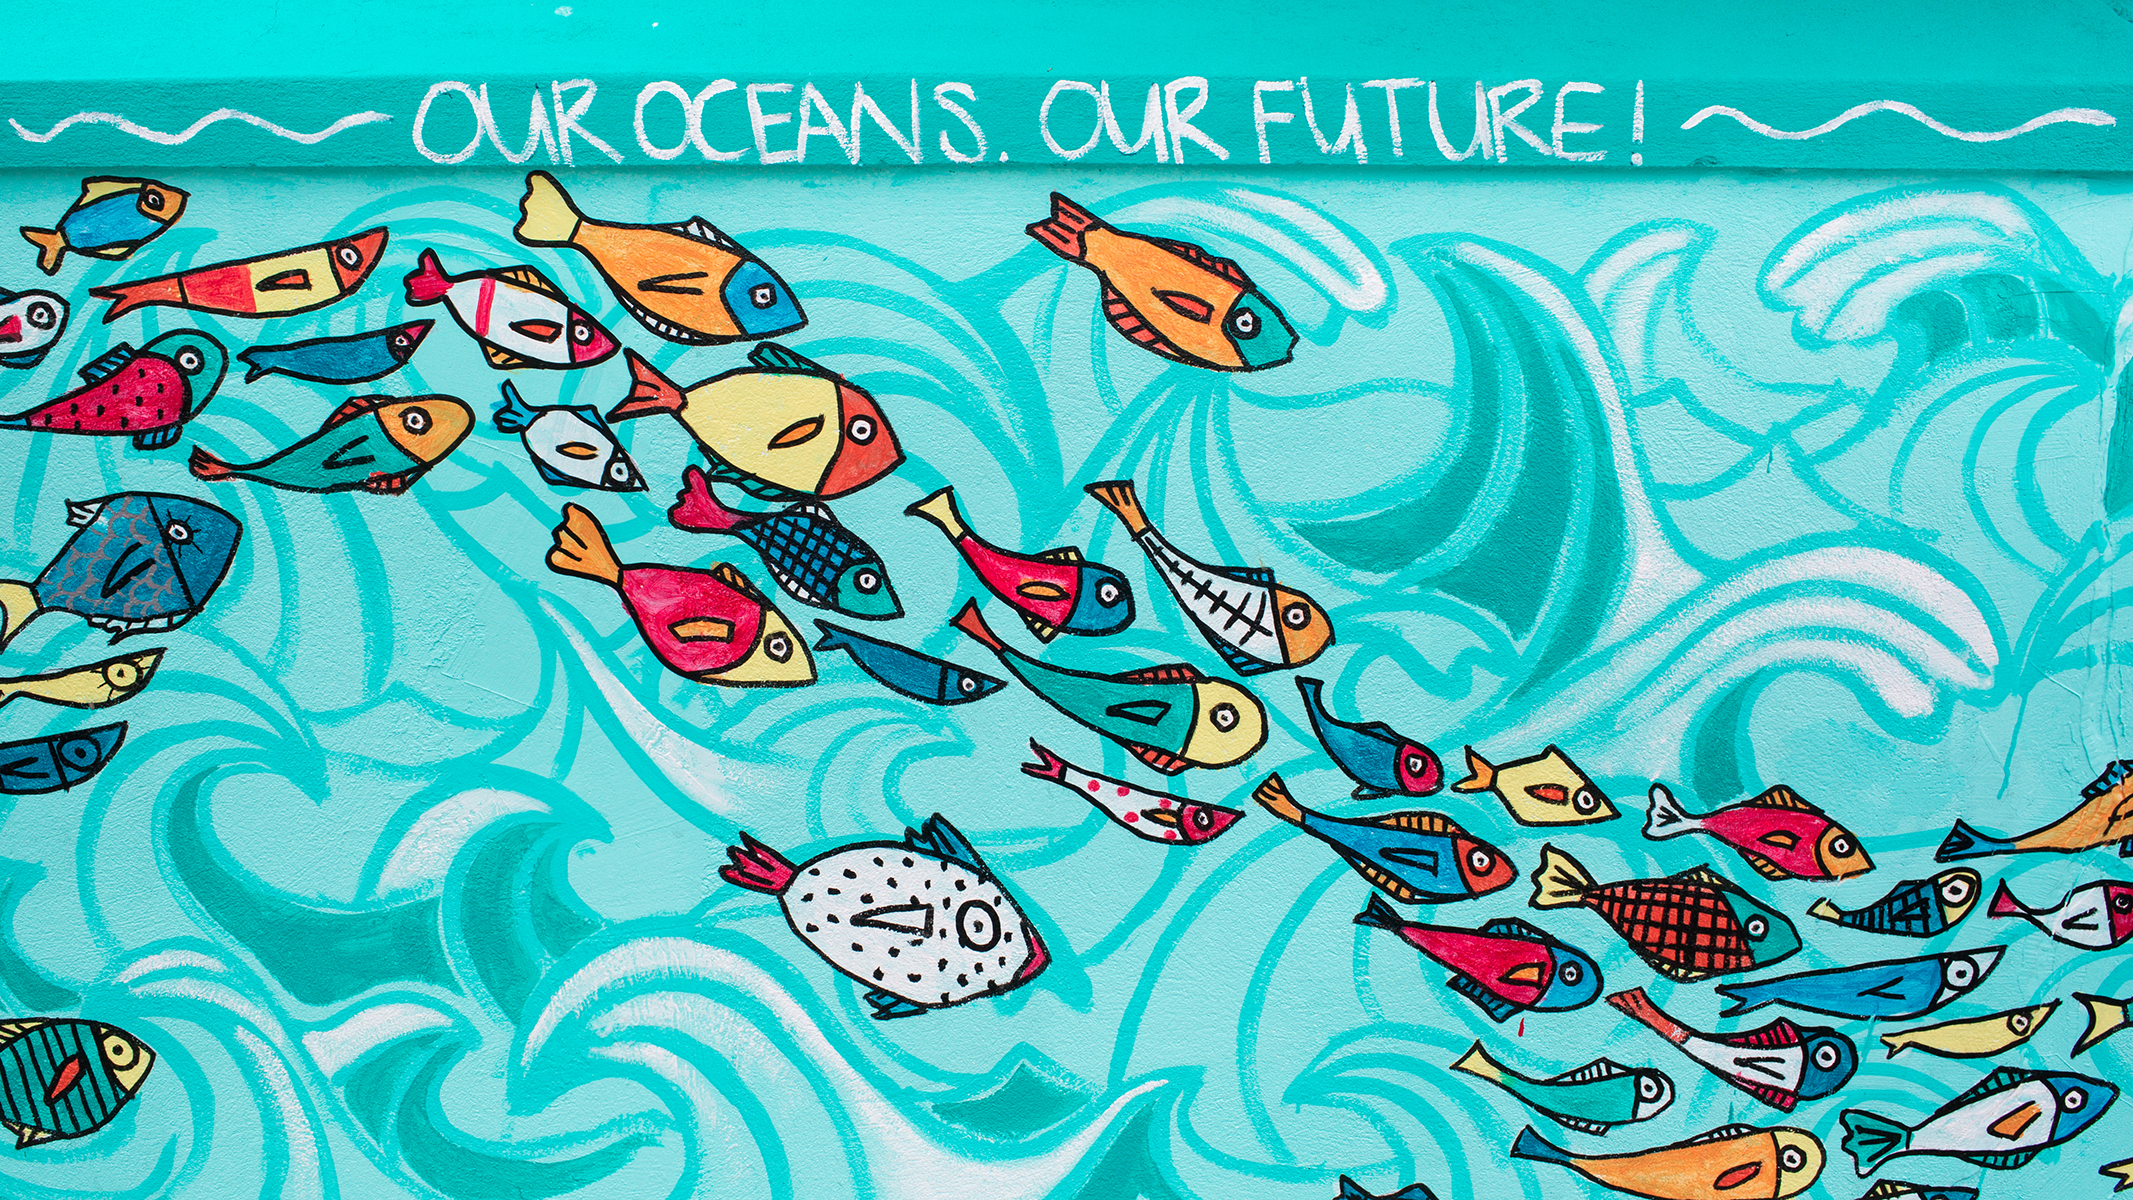 Dede Brown and Dylan Rapillard's 'World Oceans Day 2017' mural on West Hill Street, commissioned by the National Art Gallery of the Bahamas, Sandals Royal Bahamian, and the Sandals Foundation.